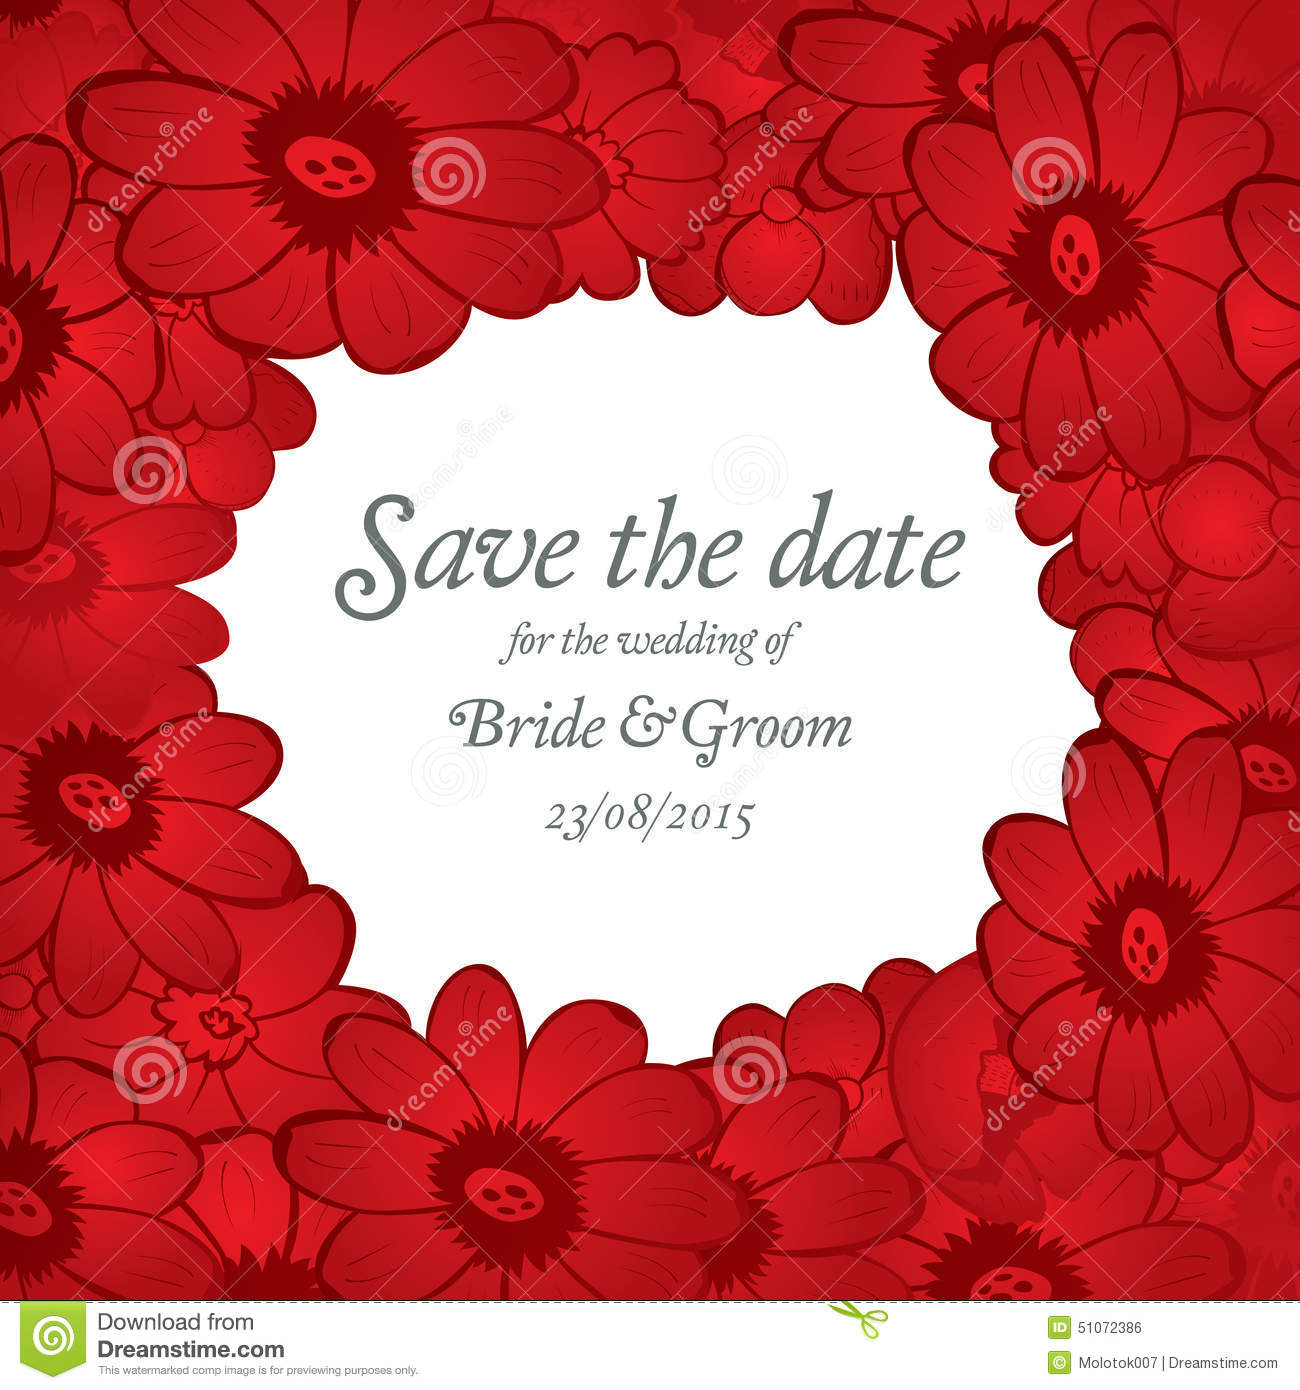 Save The Date Wedding Invite Card Template With Red Flowers Stock - Save the date holiday party templates free